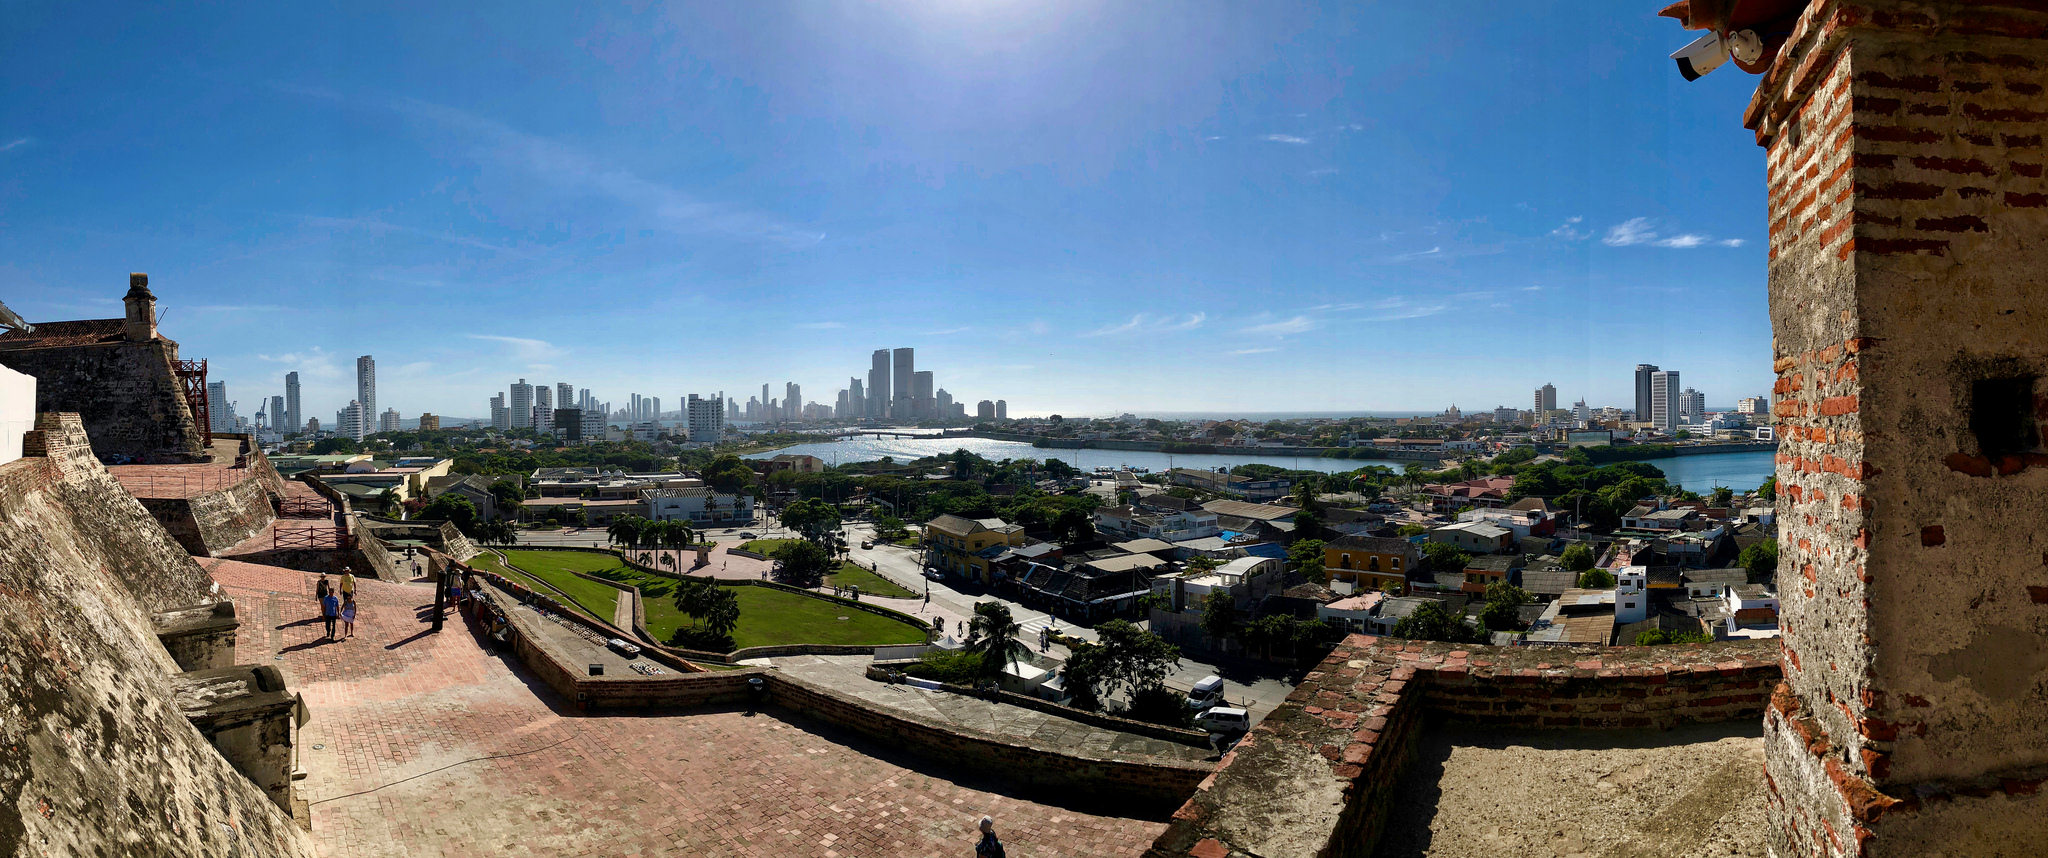 Panorama of Cartagena Colombia